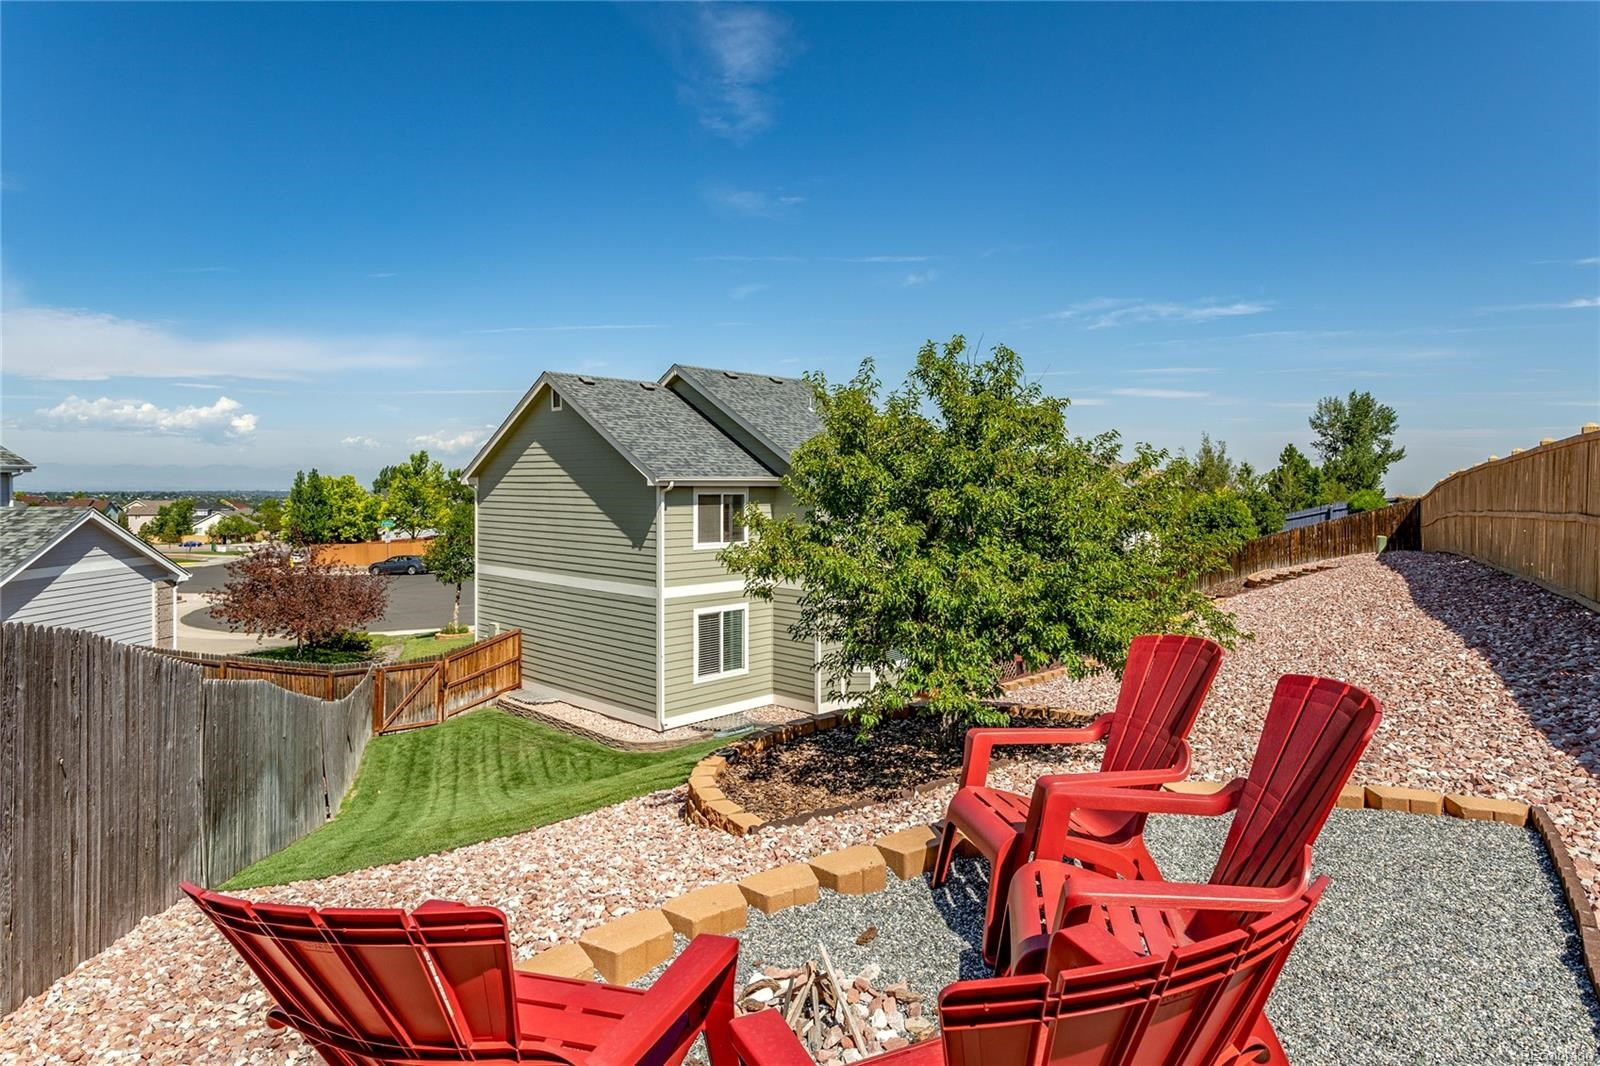 MLS# 3396693 - 27 - 6084 S Zante Way, Aurora, CO 80015